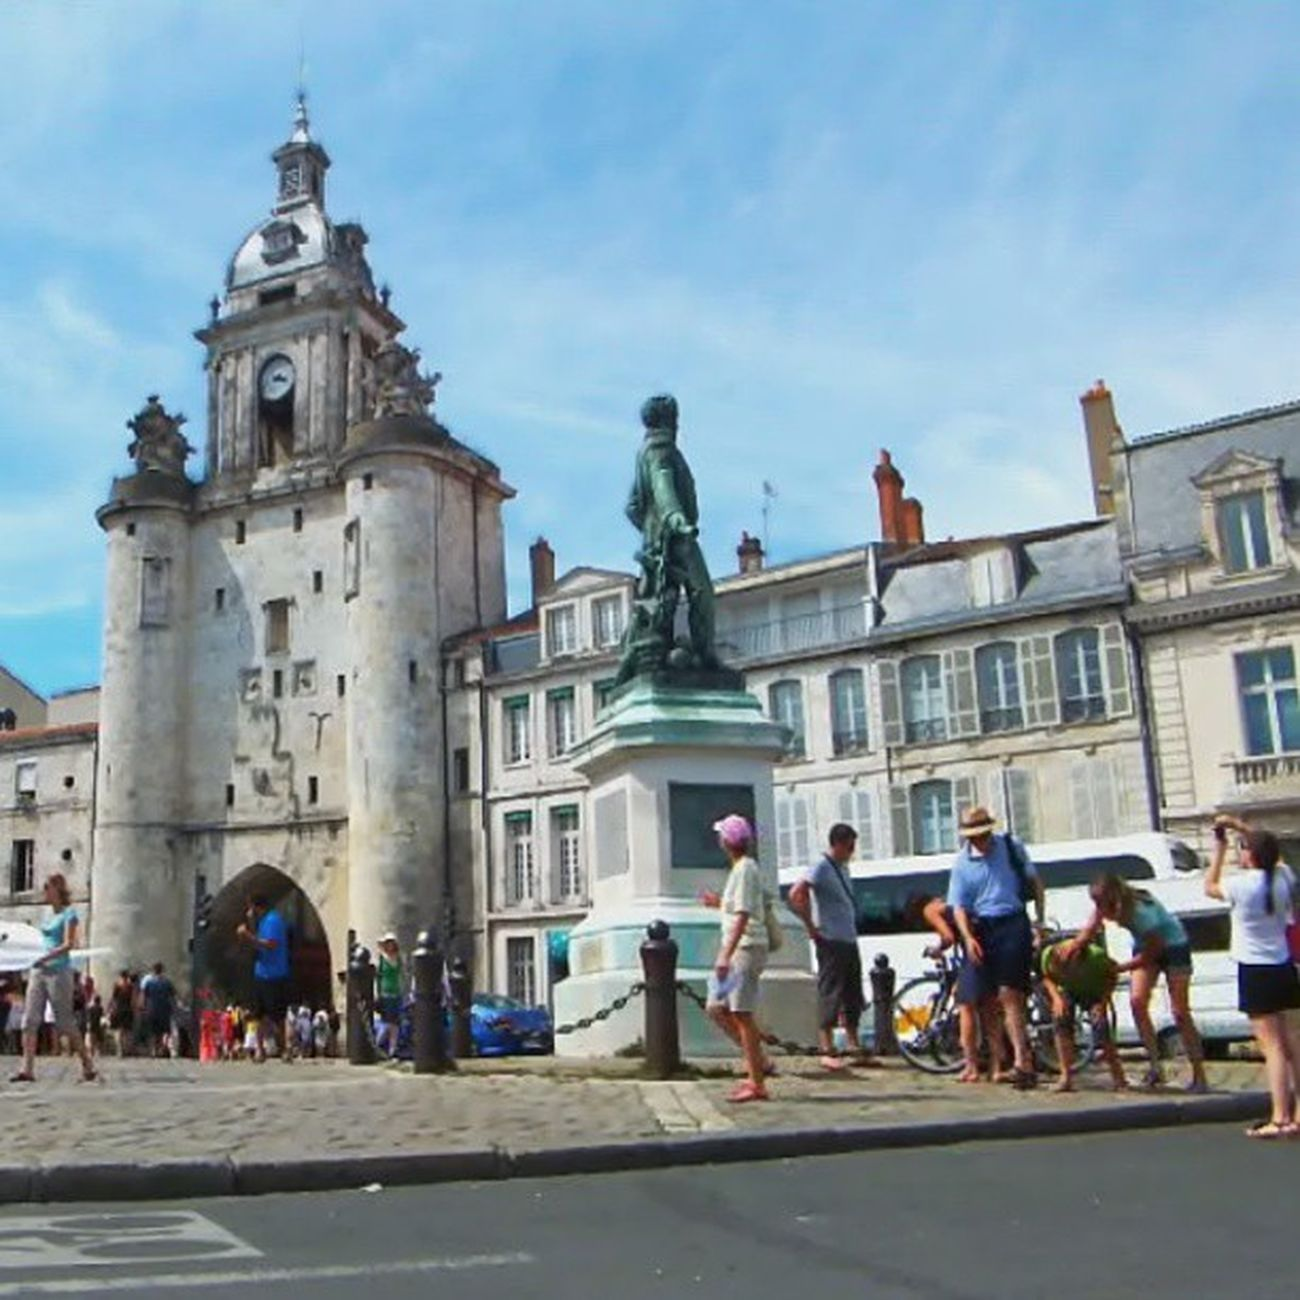 Quai Duperré #larochelle Videogramoftheday Insta_pick_video Larochelle Gi_video Videoclip Hubvideo Videoinstagram Global_views_videoshot Instagramvideo Videogram Igvideo Instavideo Igersfrancevideo Worldvideos Insta_globalvideo Tribegram_video Perfectvideo Videooftheday Myfirstvideo